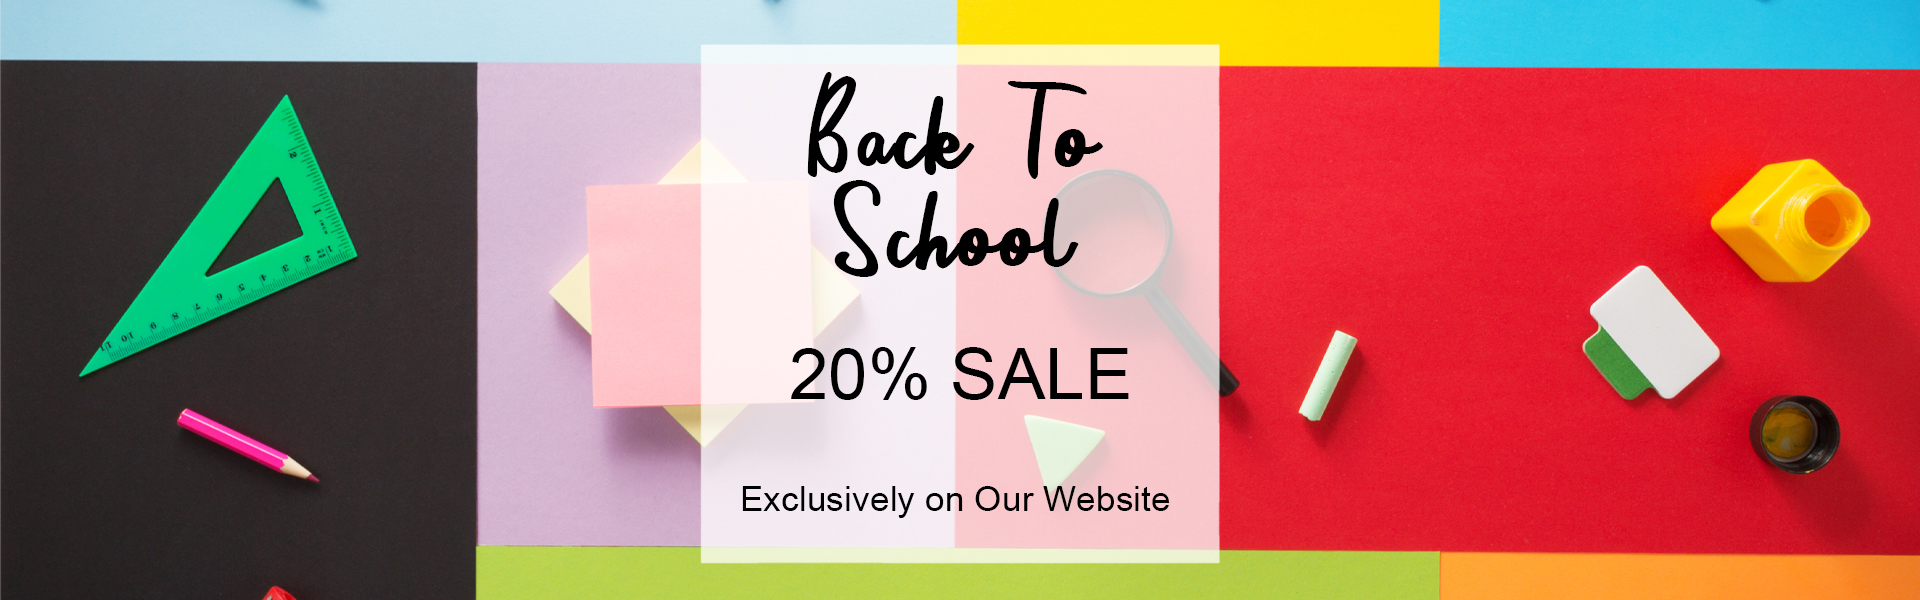 Back To School Stationery List Supplies Wholesale uk